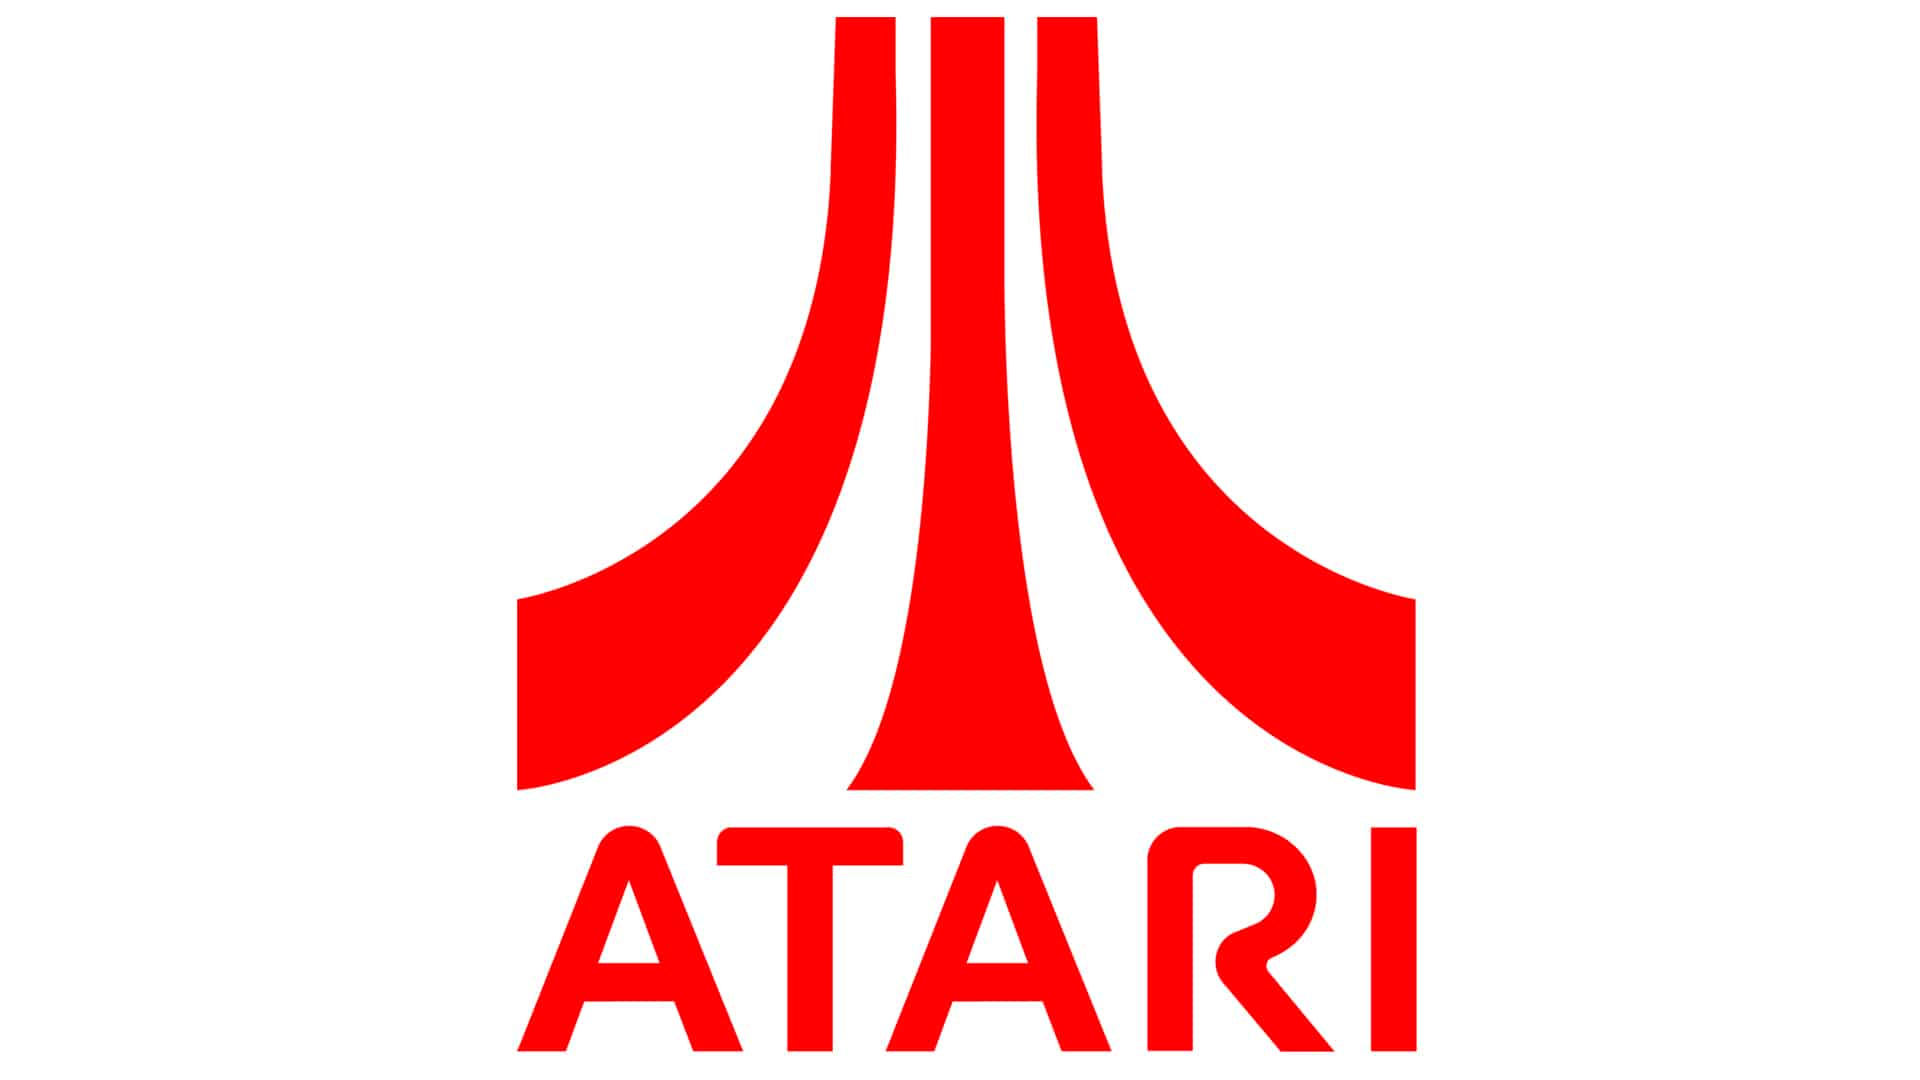 Target is Being Sued by Atari Over